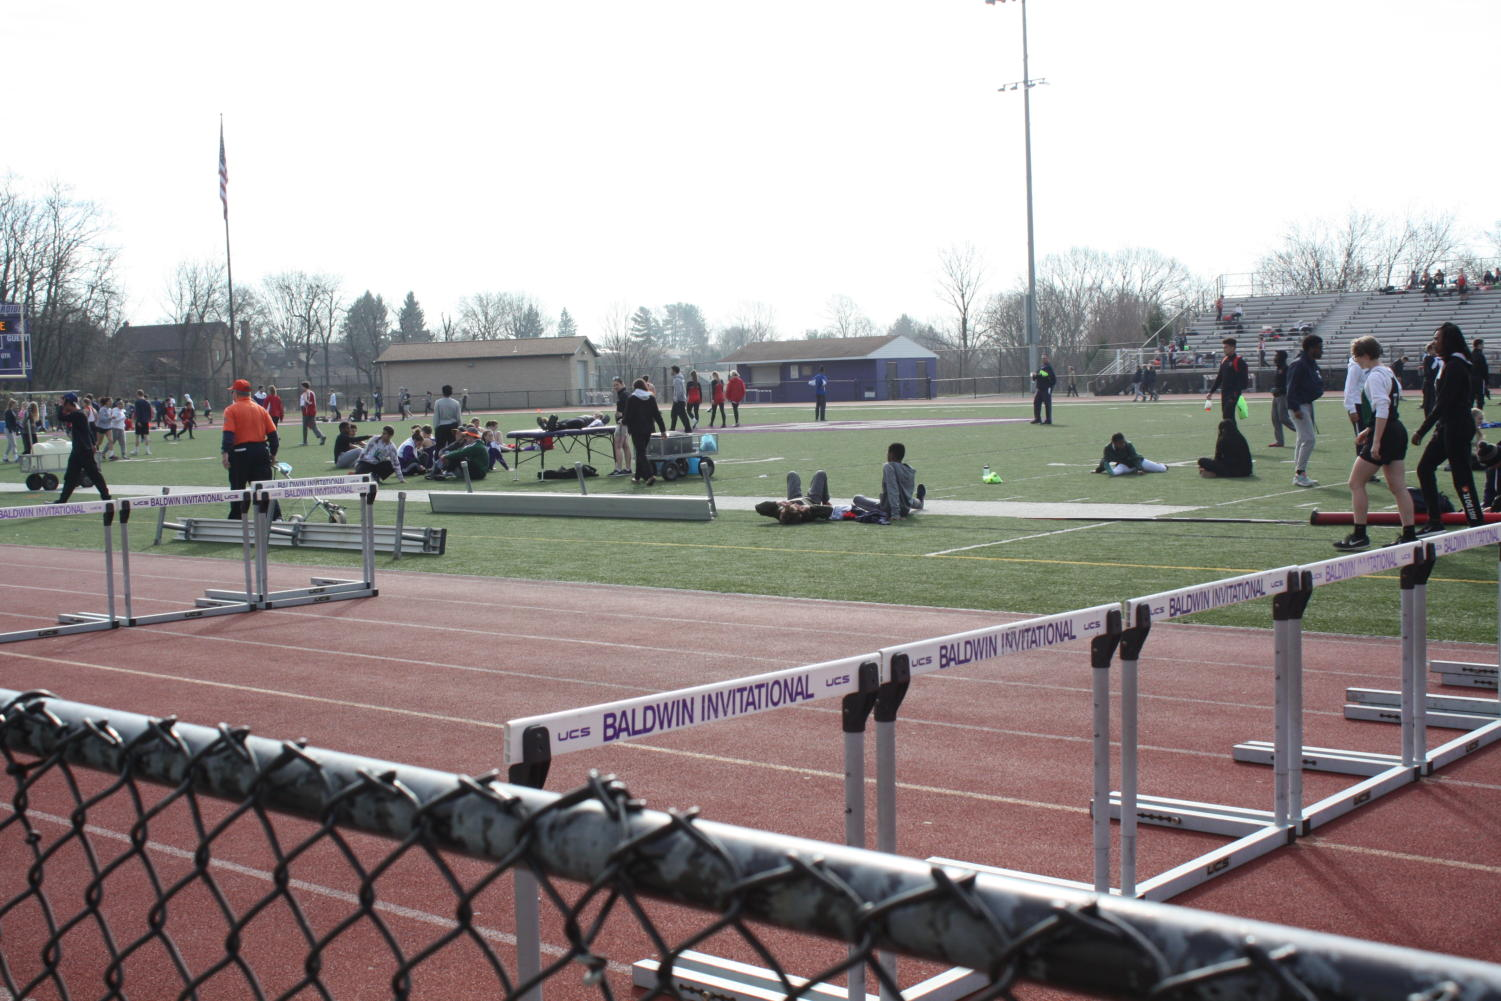 Members of the Baldwin track team ended their season with a strong states performance.